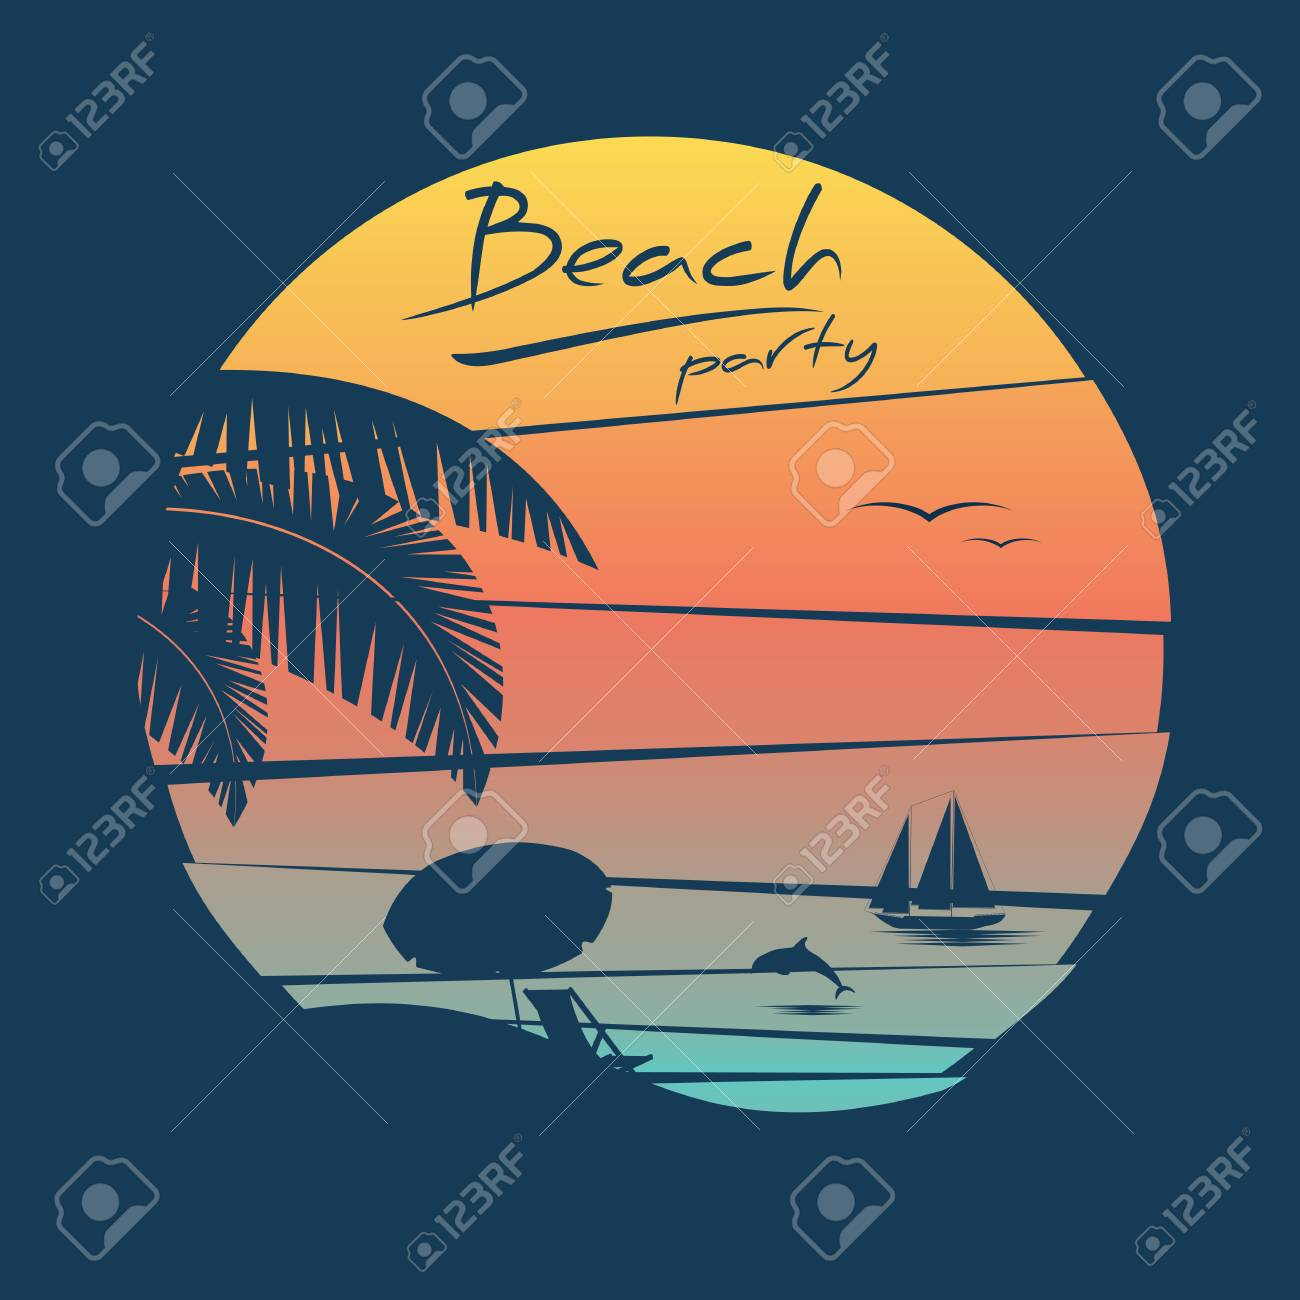 Beach Party Poster With Tropical Island And Palm Trees On Sunset